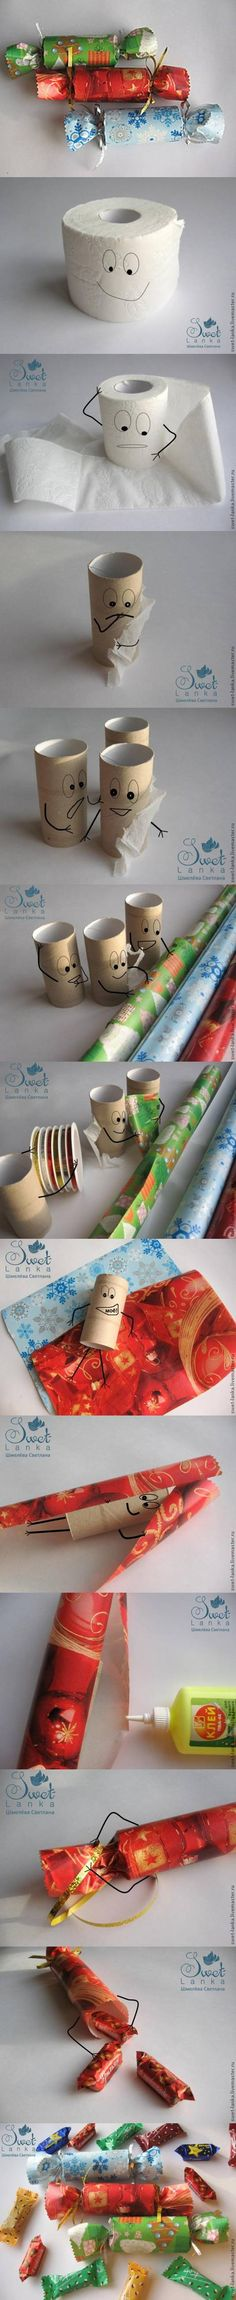 DIY Toilet Roll Candy Box